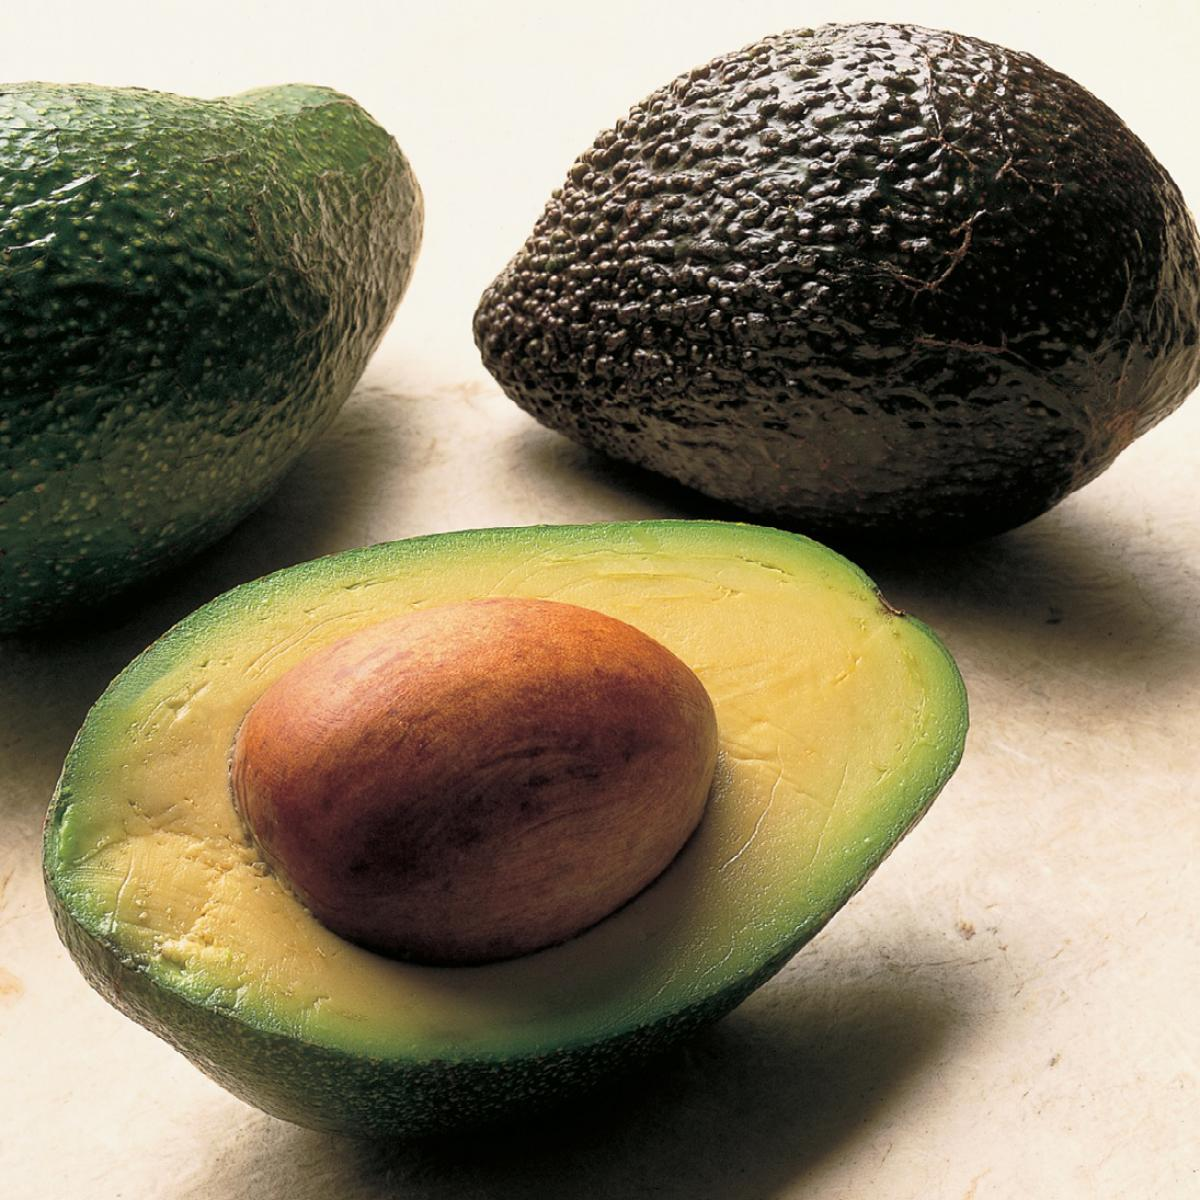 Ingredient vegetarian avocado